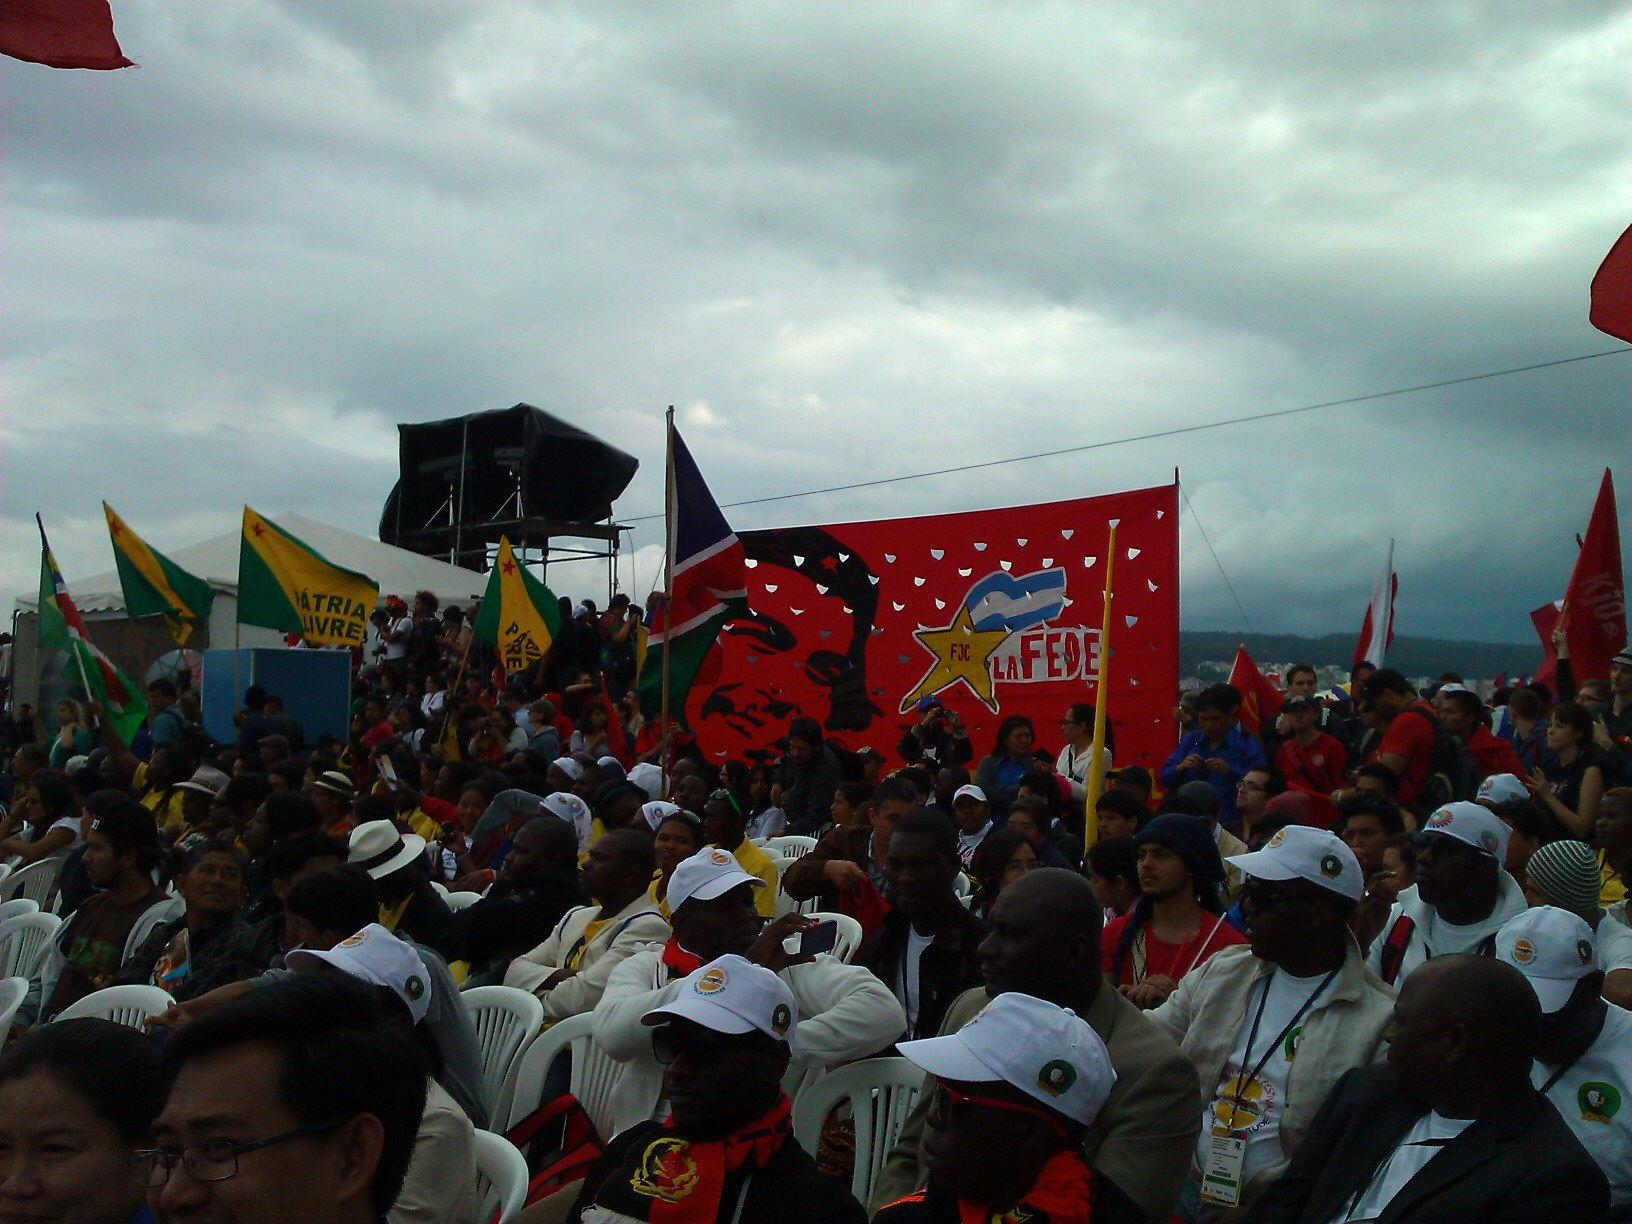 At the rally in Quito